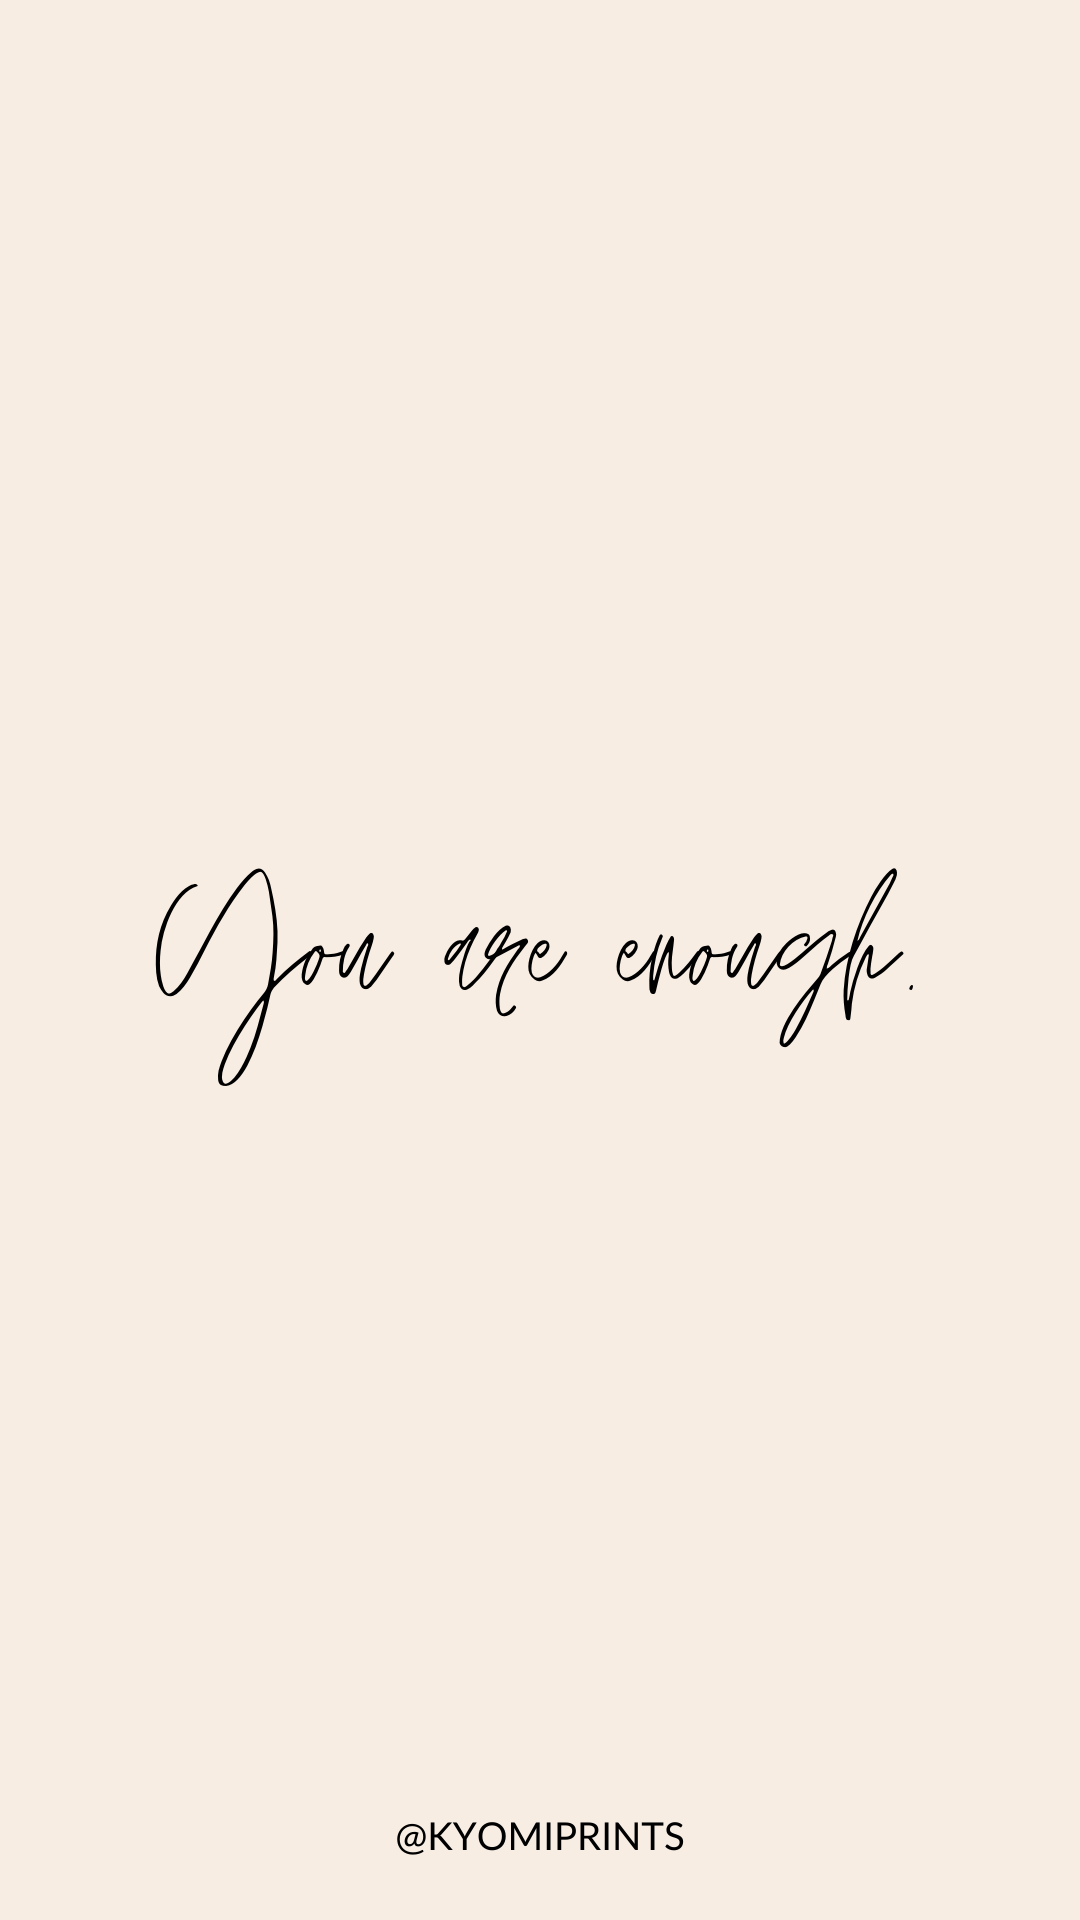 You Are Enough Wallpapers   Wallpaper Cave